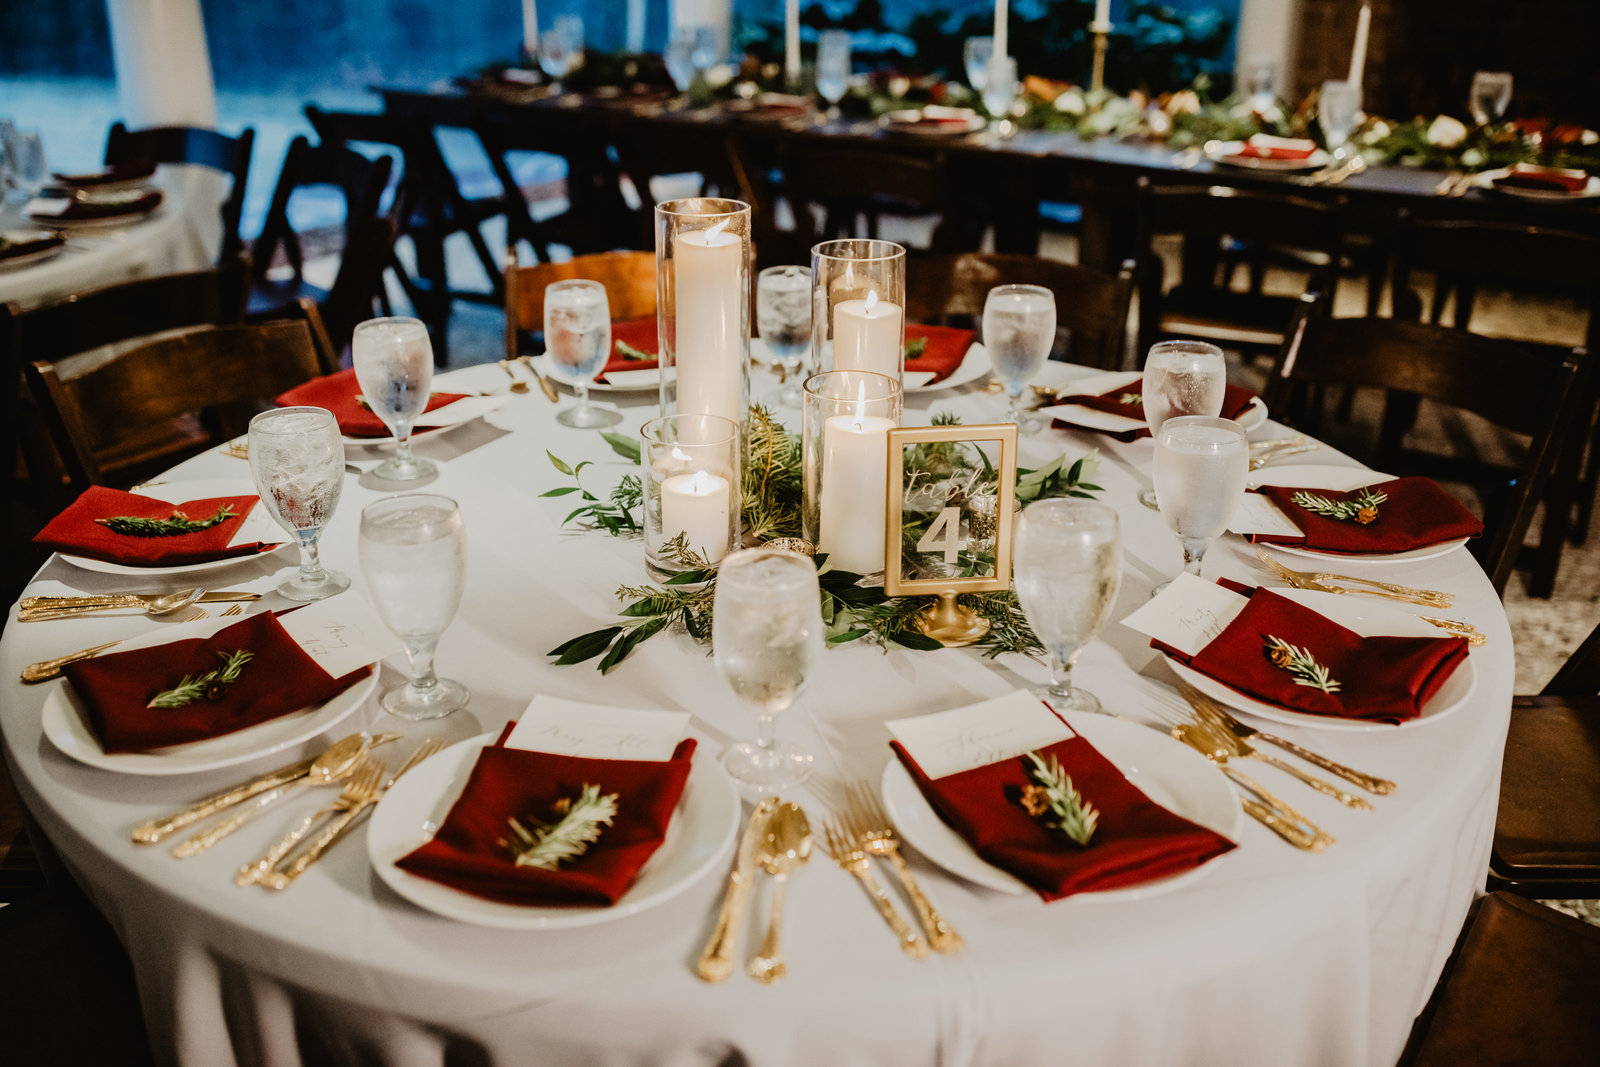 Winter accented table with burgundy accents and touches of greens at the Mackey House